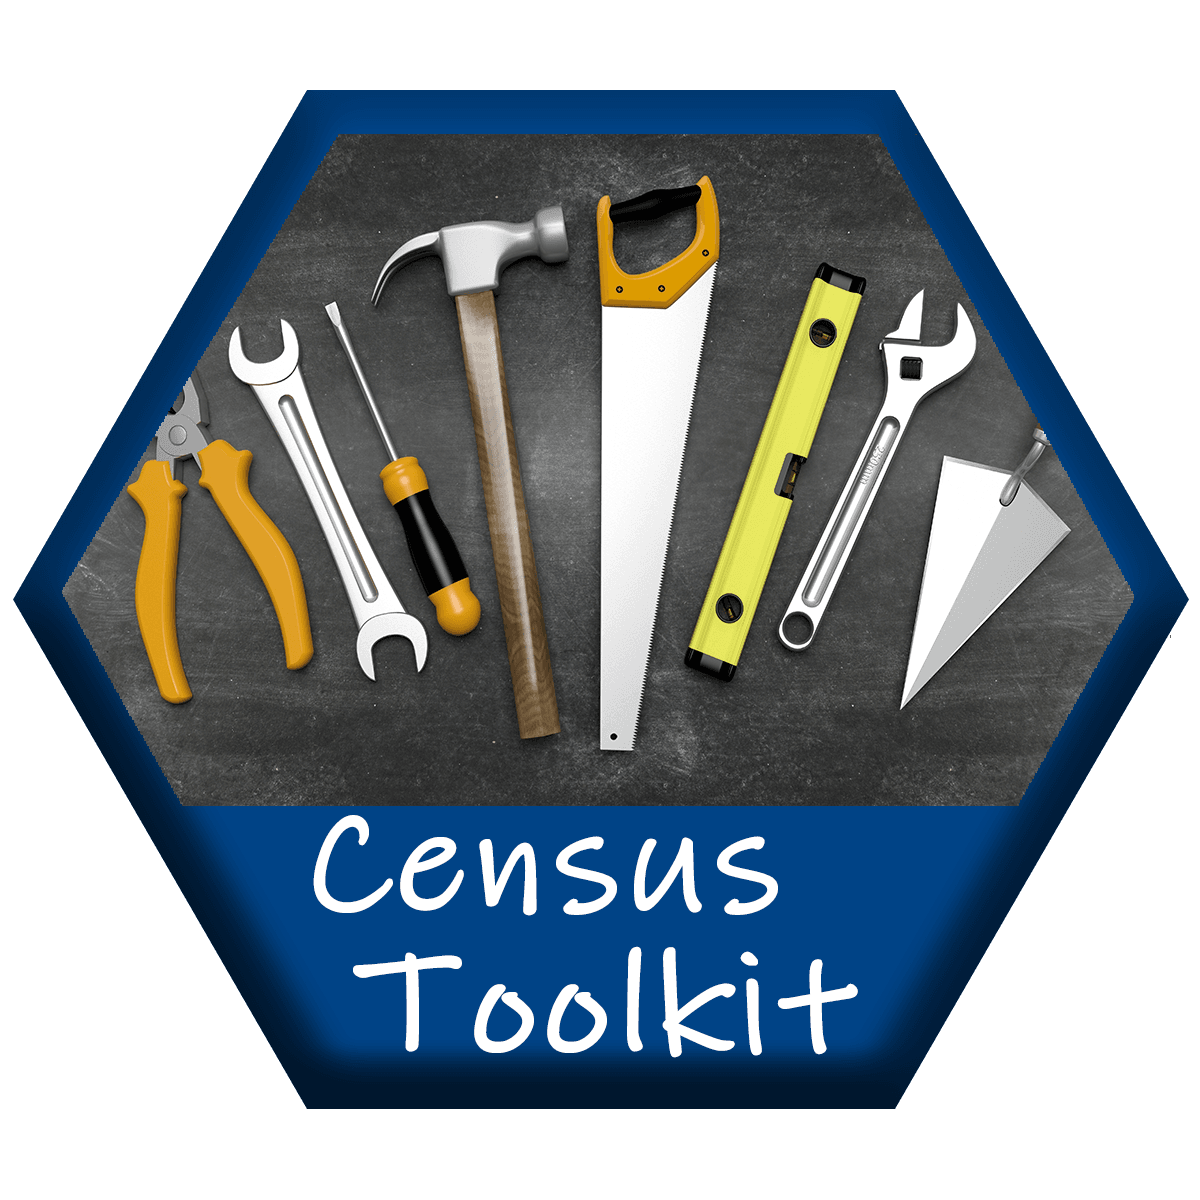 Census Page Buttons Toolkit